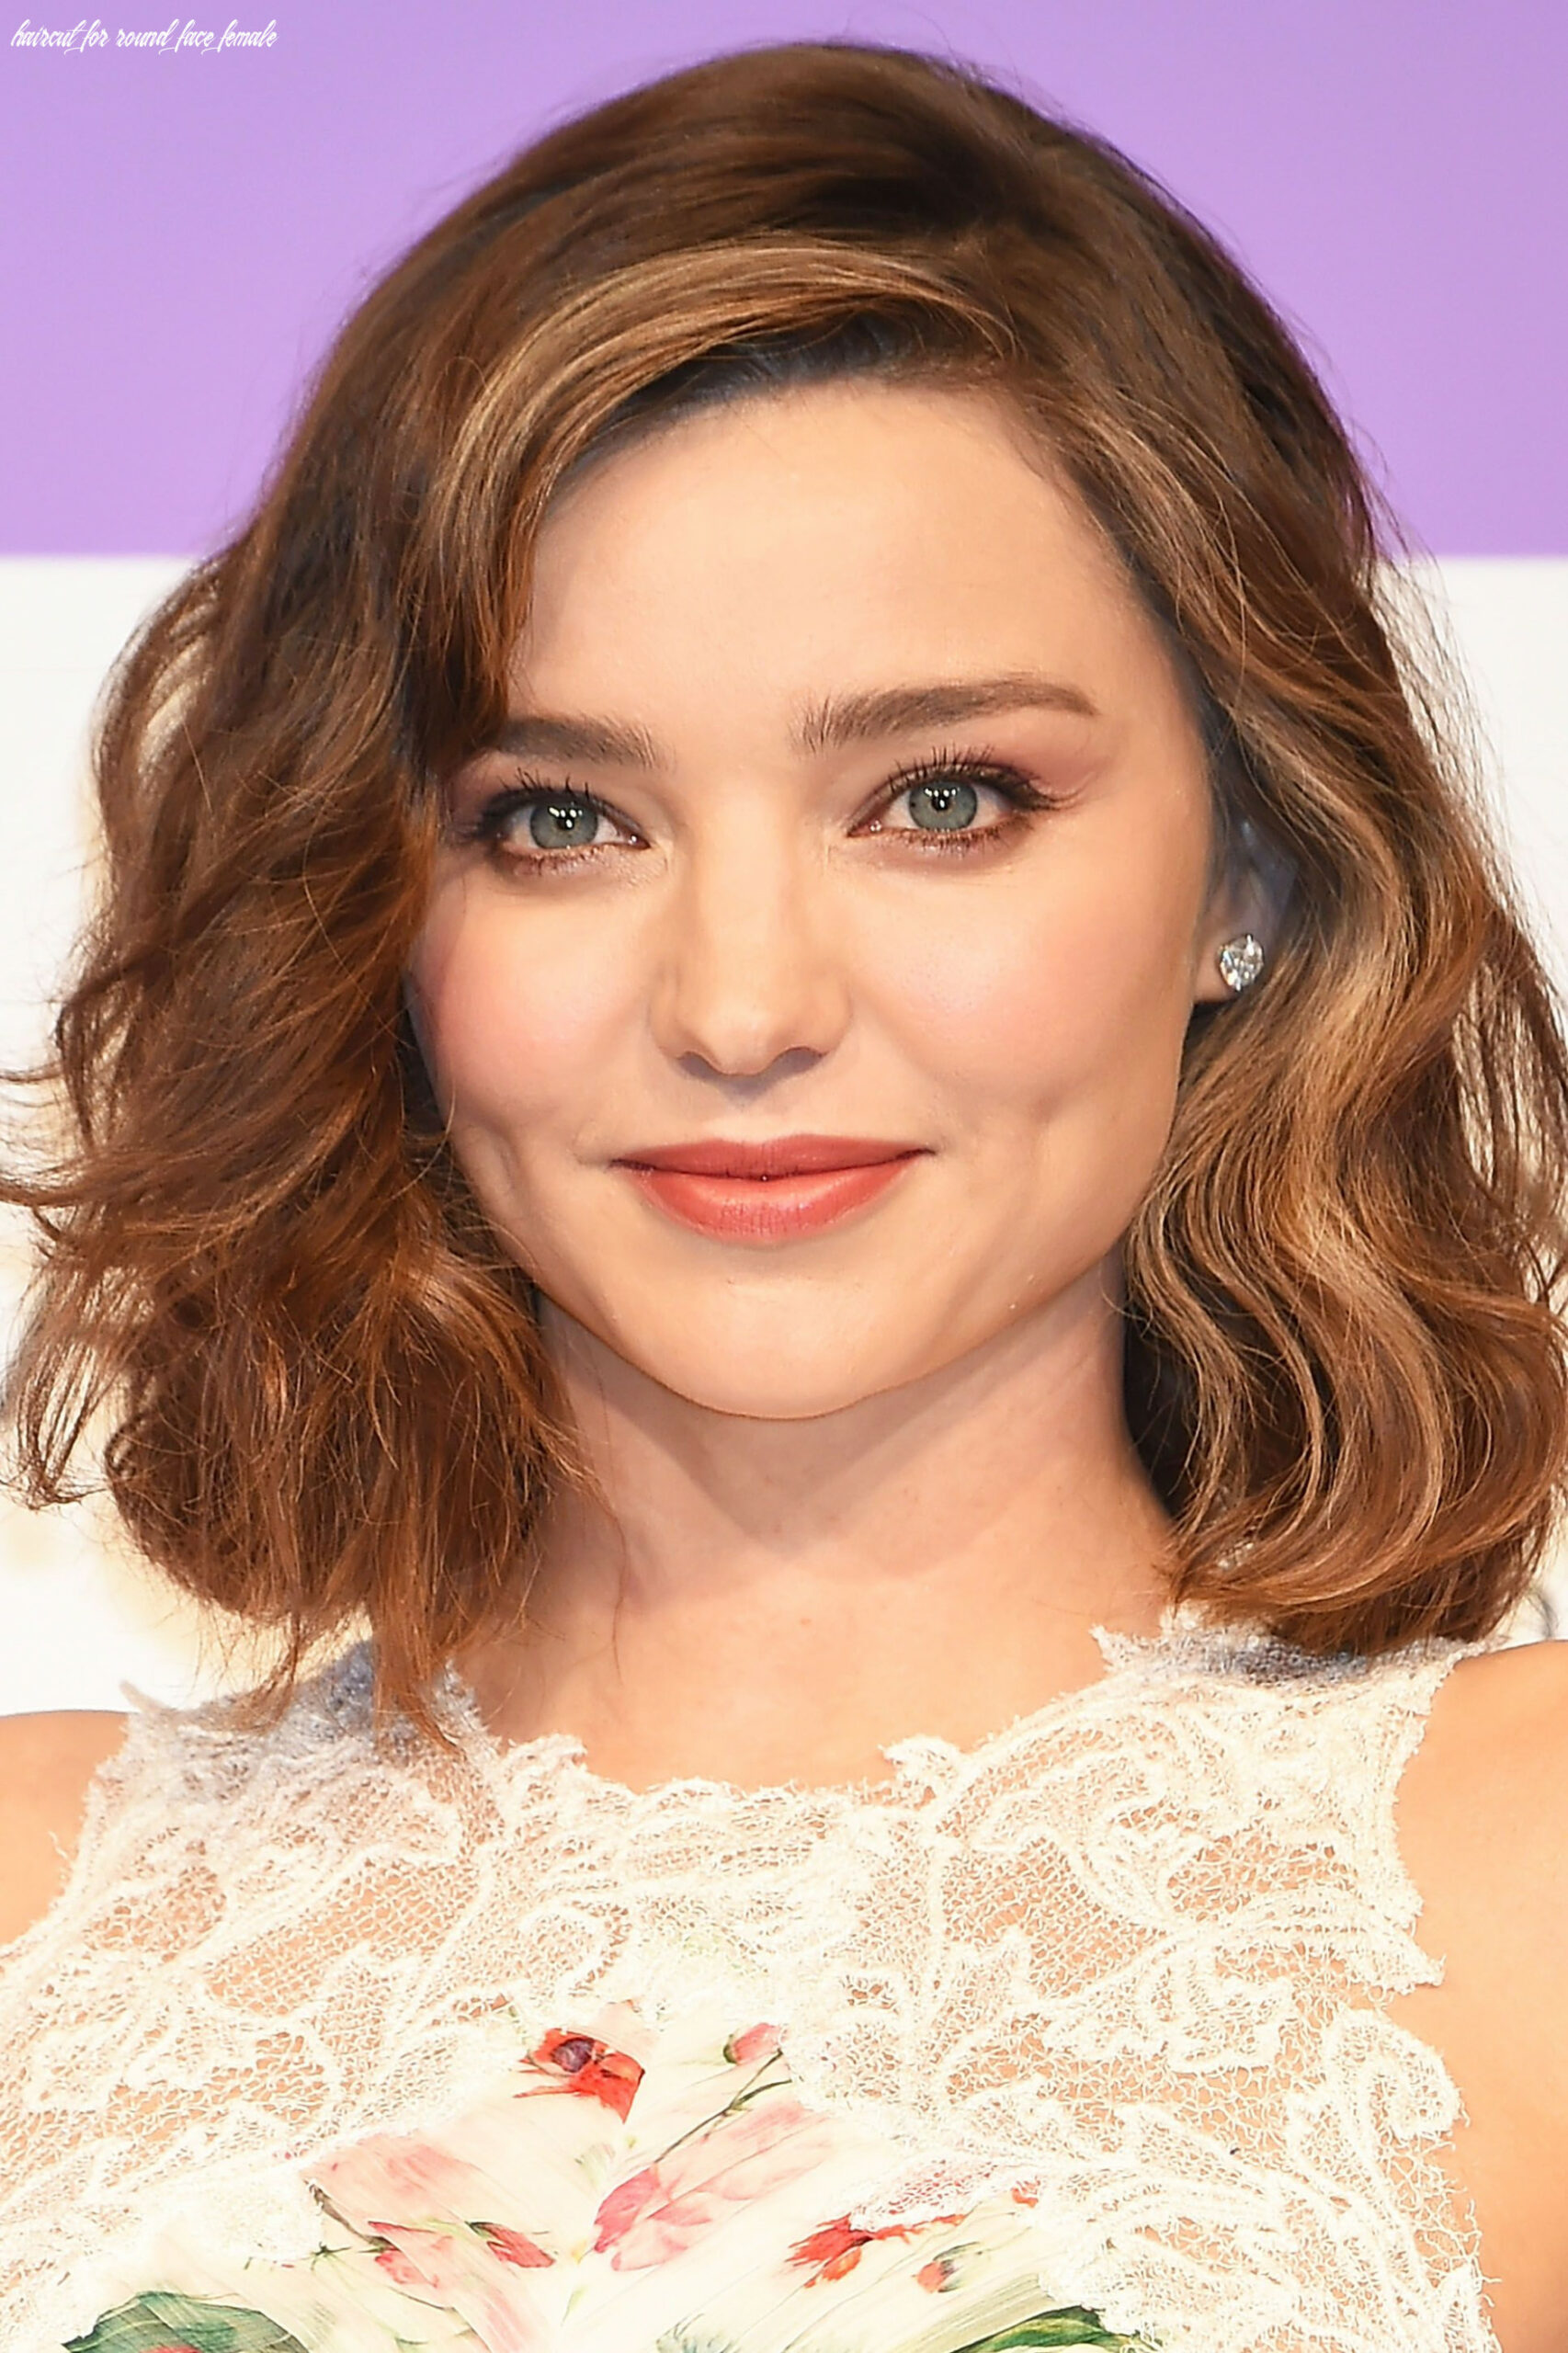 10 best hairstyles for round faces in 10 easy haircut ideas